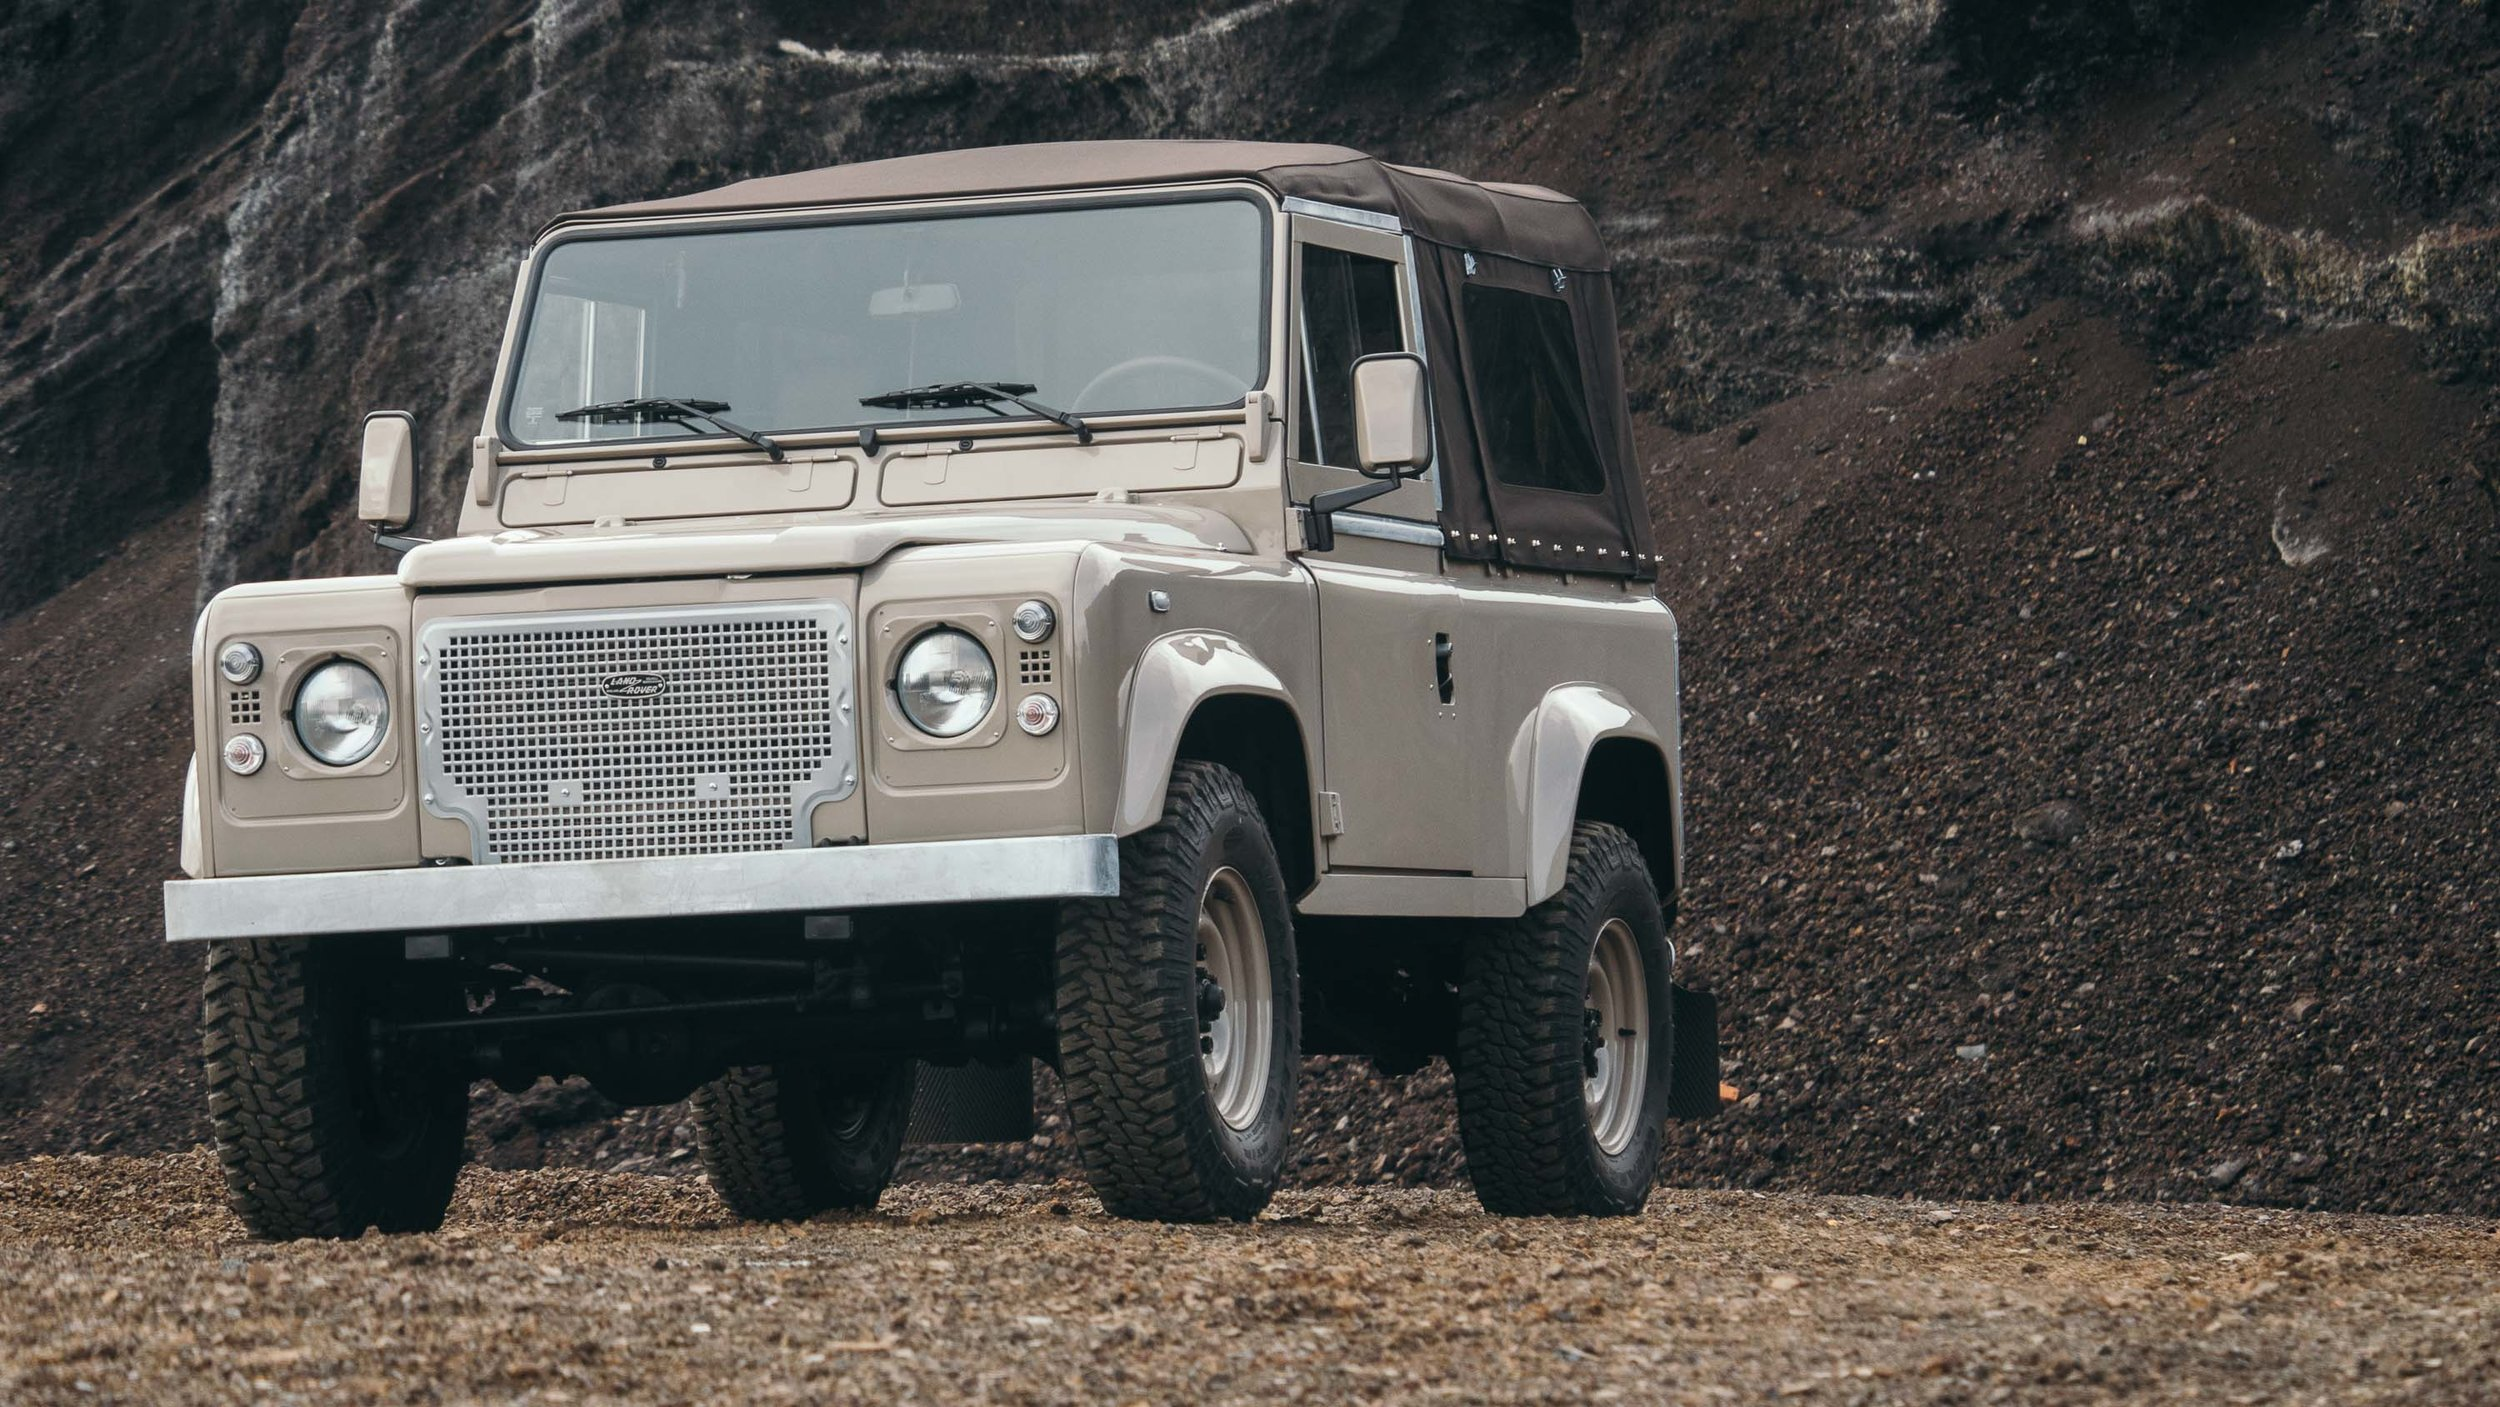 coolnvintage Land Rover Defender (63 of 81).jpg